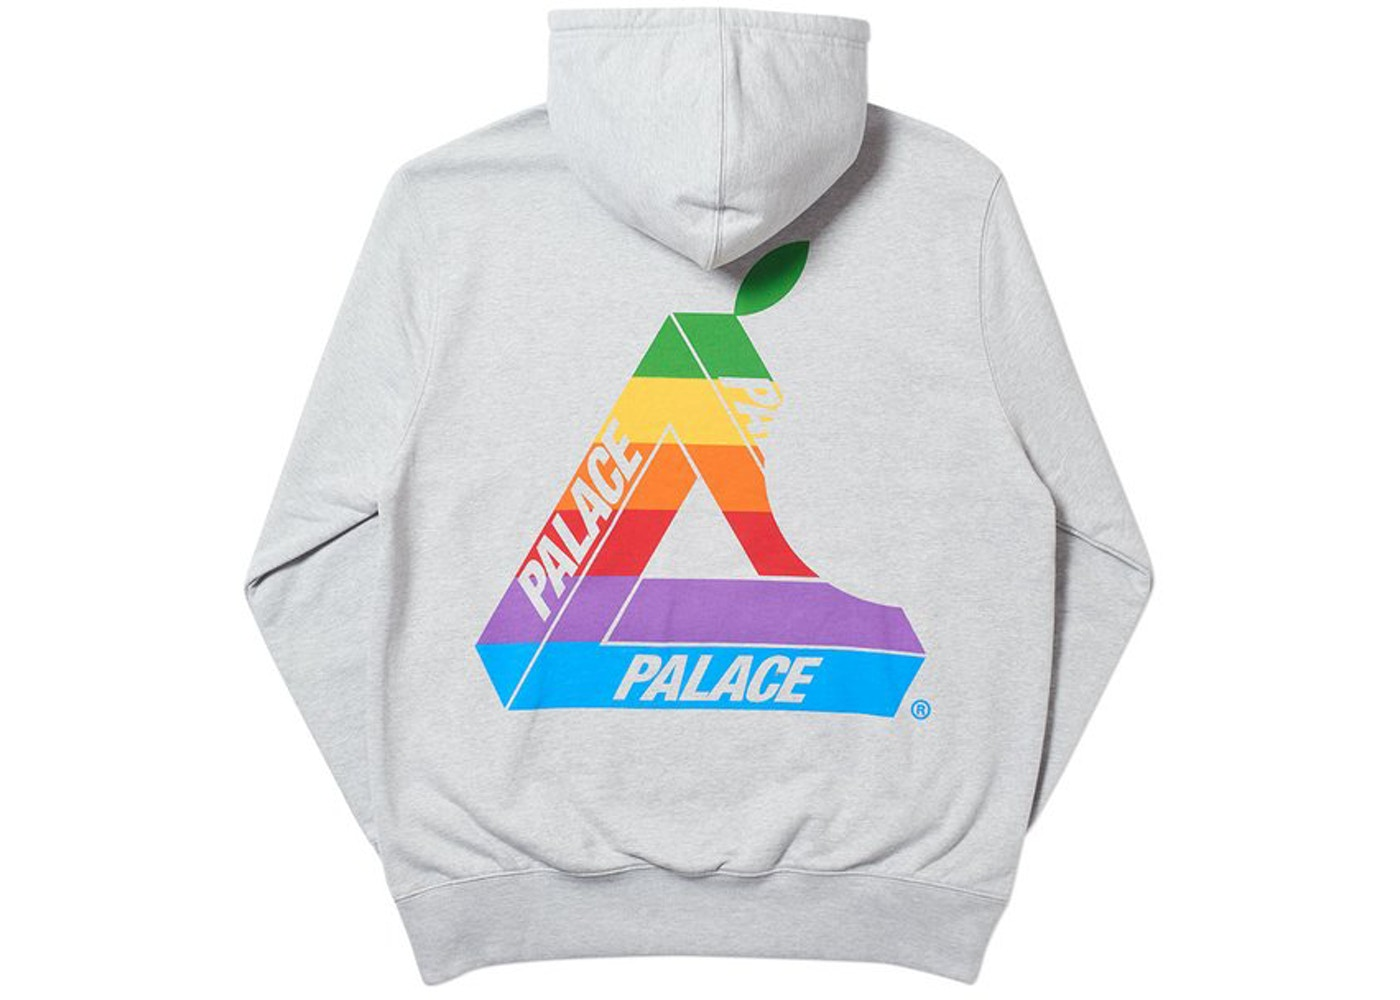 5f0f835f60de Streetwear - Palace Tops Sweatshirts - Total Sold